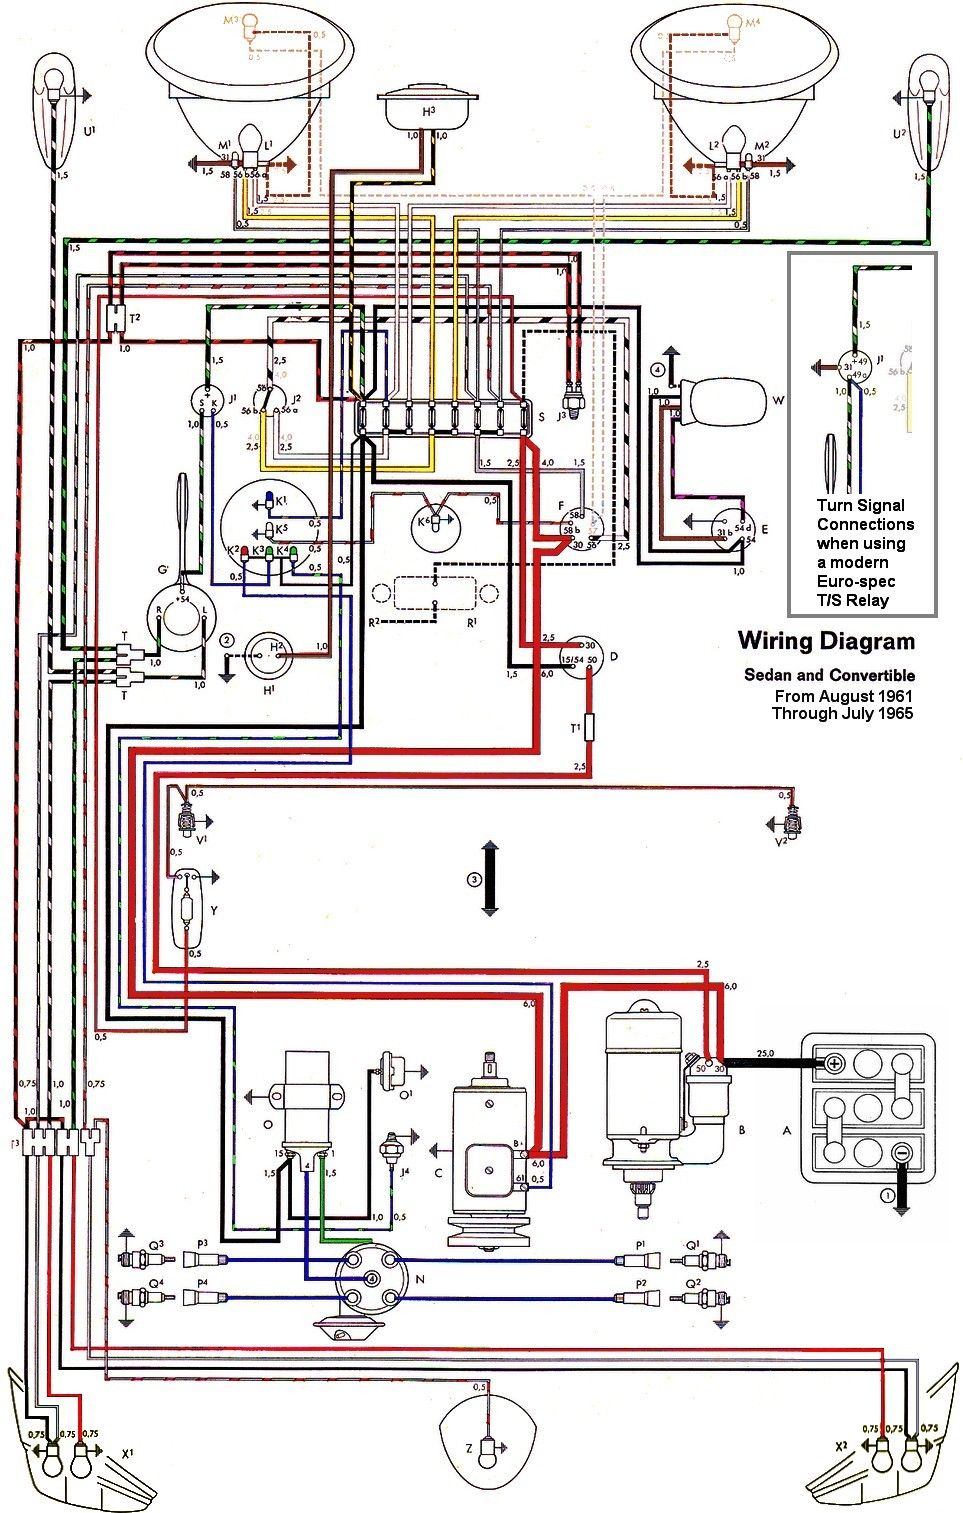 wiring diagram vw beetle sedan and convertible 1961 1965 vw rh pinterest com 76 VW Bus Wiring Diagram 1965 vw bus wiring diagram